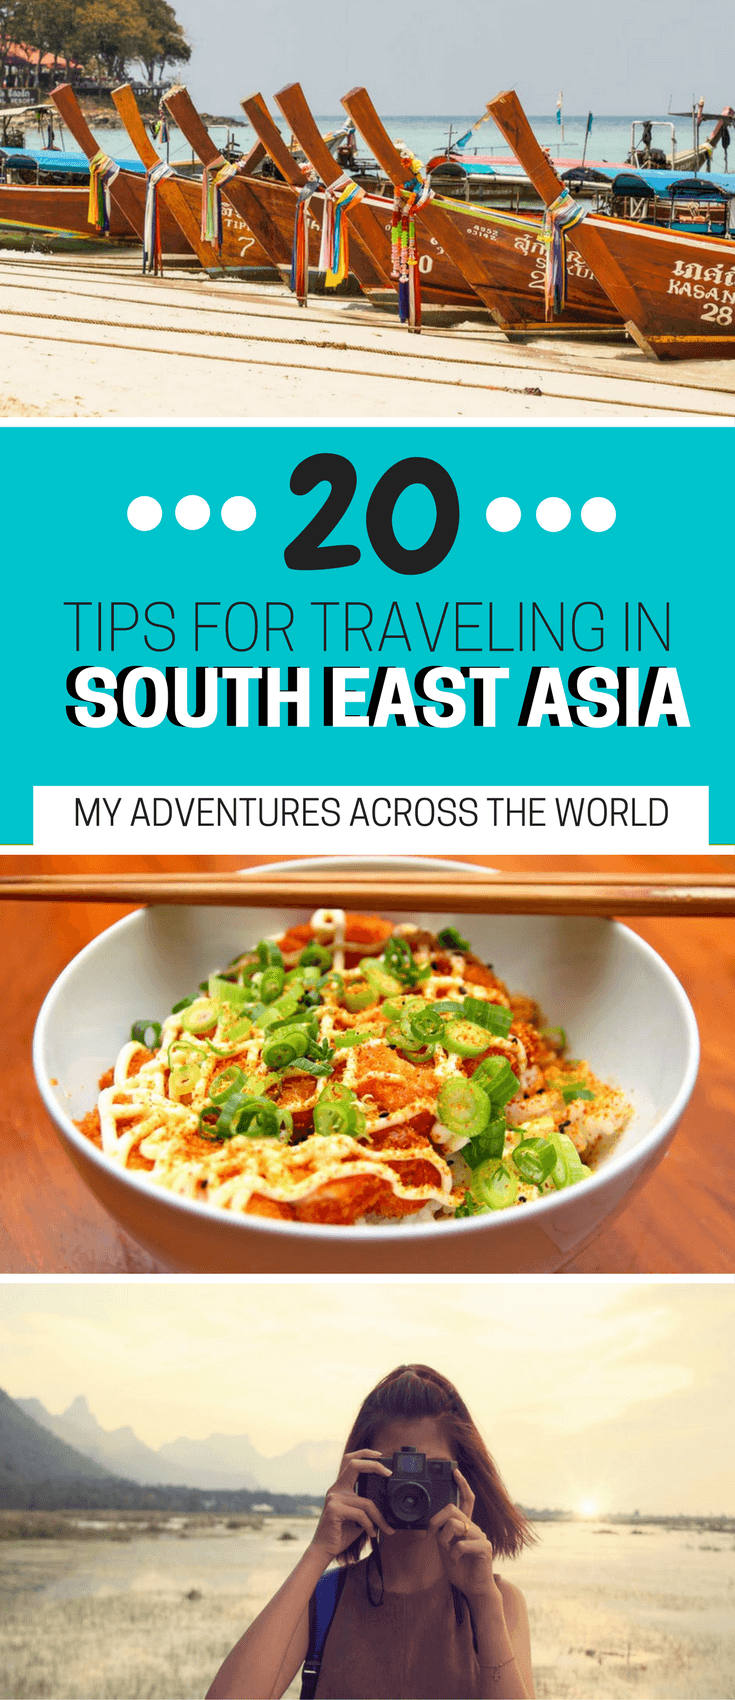 Discover all the tips to prepare for a trip to South East Asia - via @clautavani